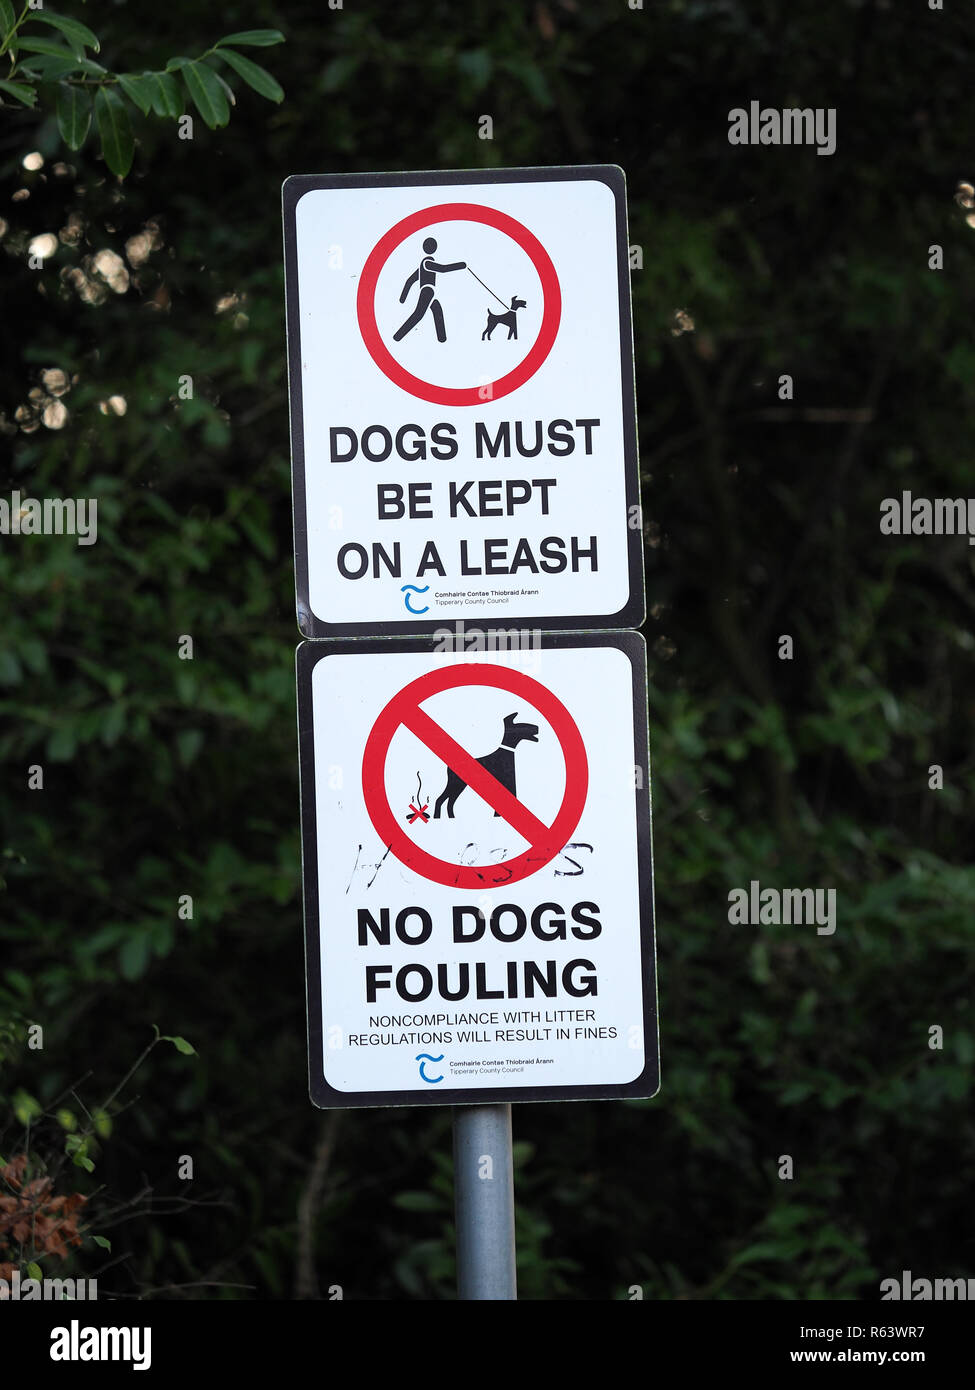 sign advising dog owners that dogs must be kept on a leash and no dog fouling